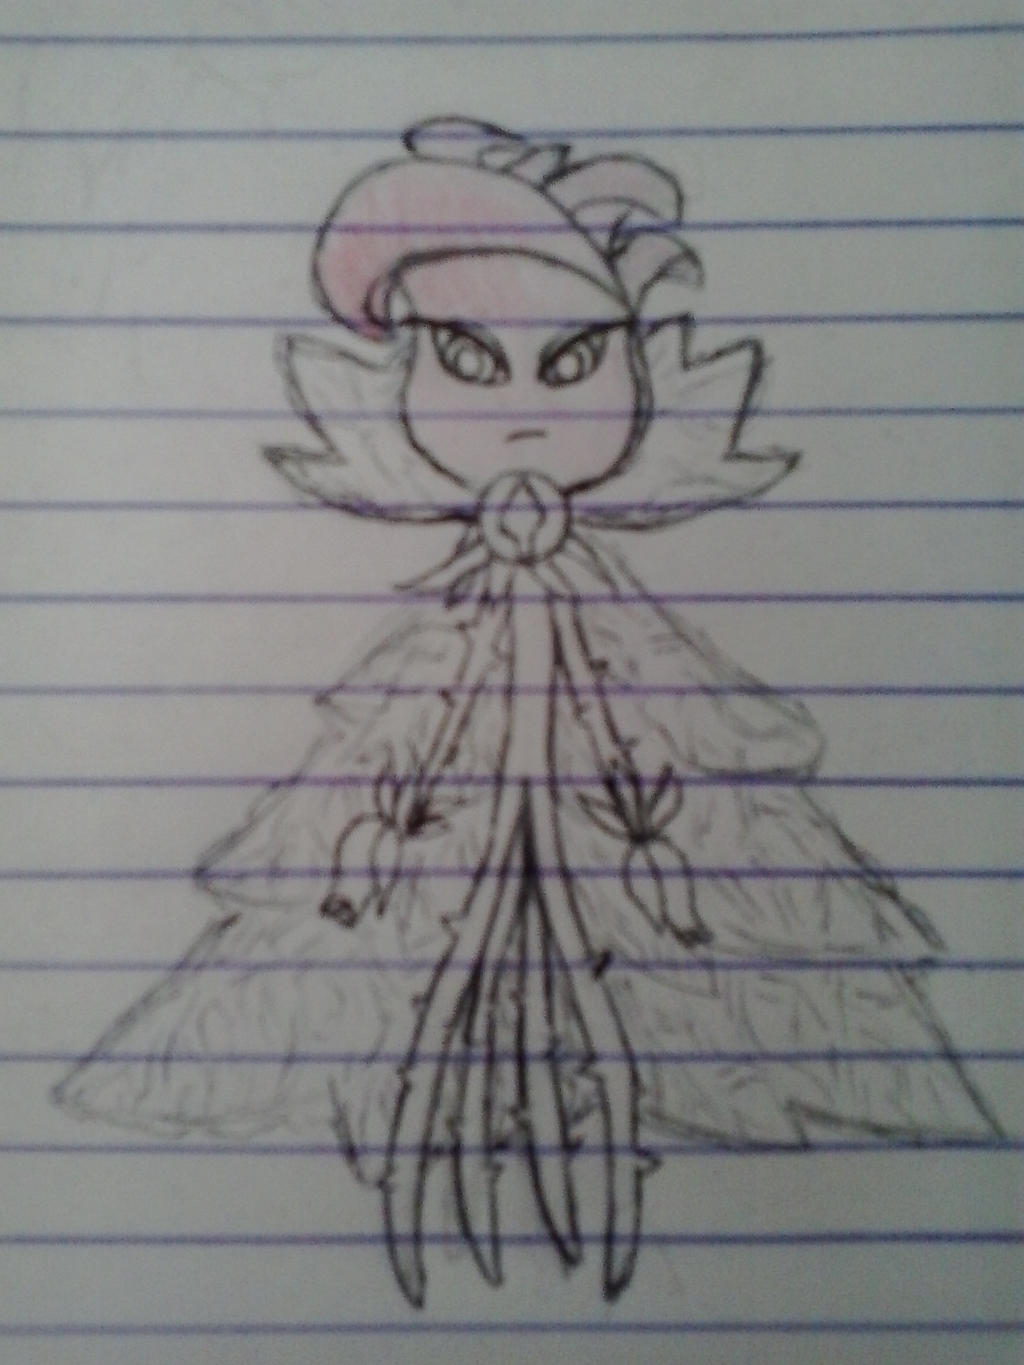 Hero flo concept drawing wip by showlover on deviantart for How to draw flo